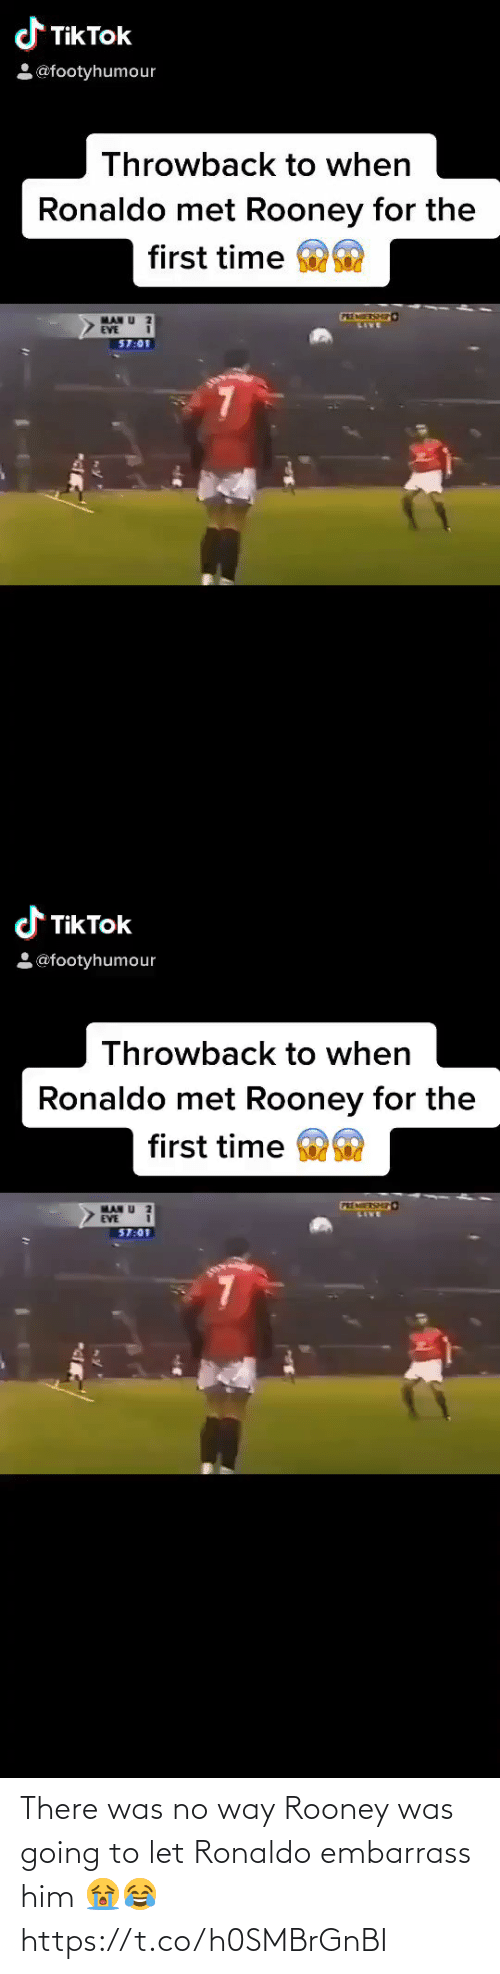 embarrass: There was no way Rooney was going to let Ronaldo embarrass him 😭😂 https://t.co/h0SMBrGnBI